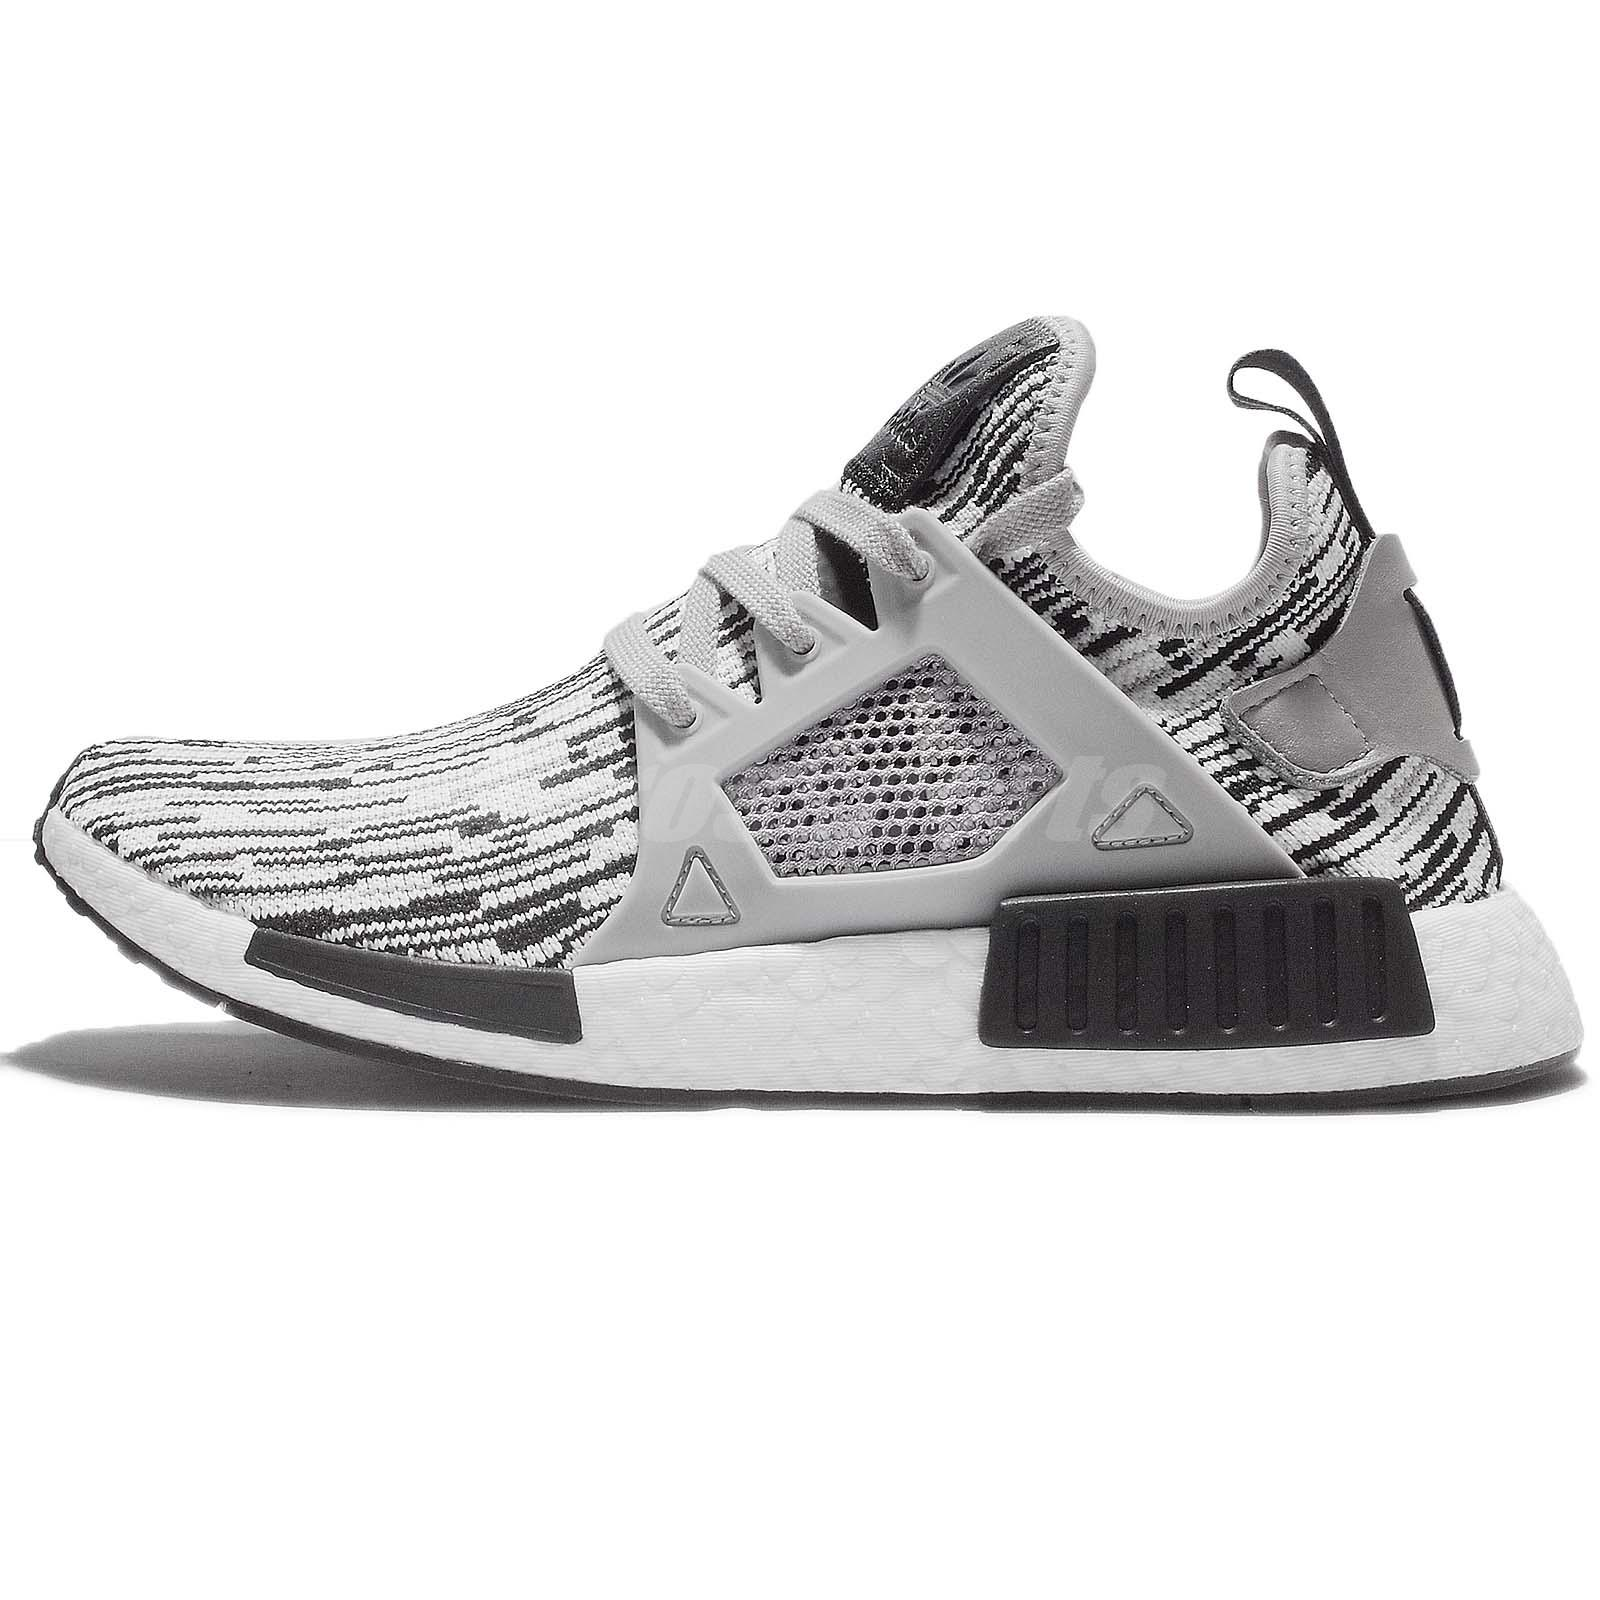 adidas Originals NMD Xr1 Primeknit Trainers UK 9.5 Black